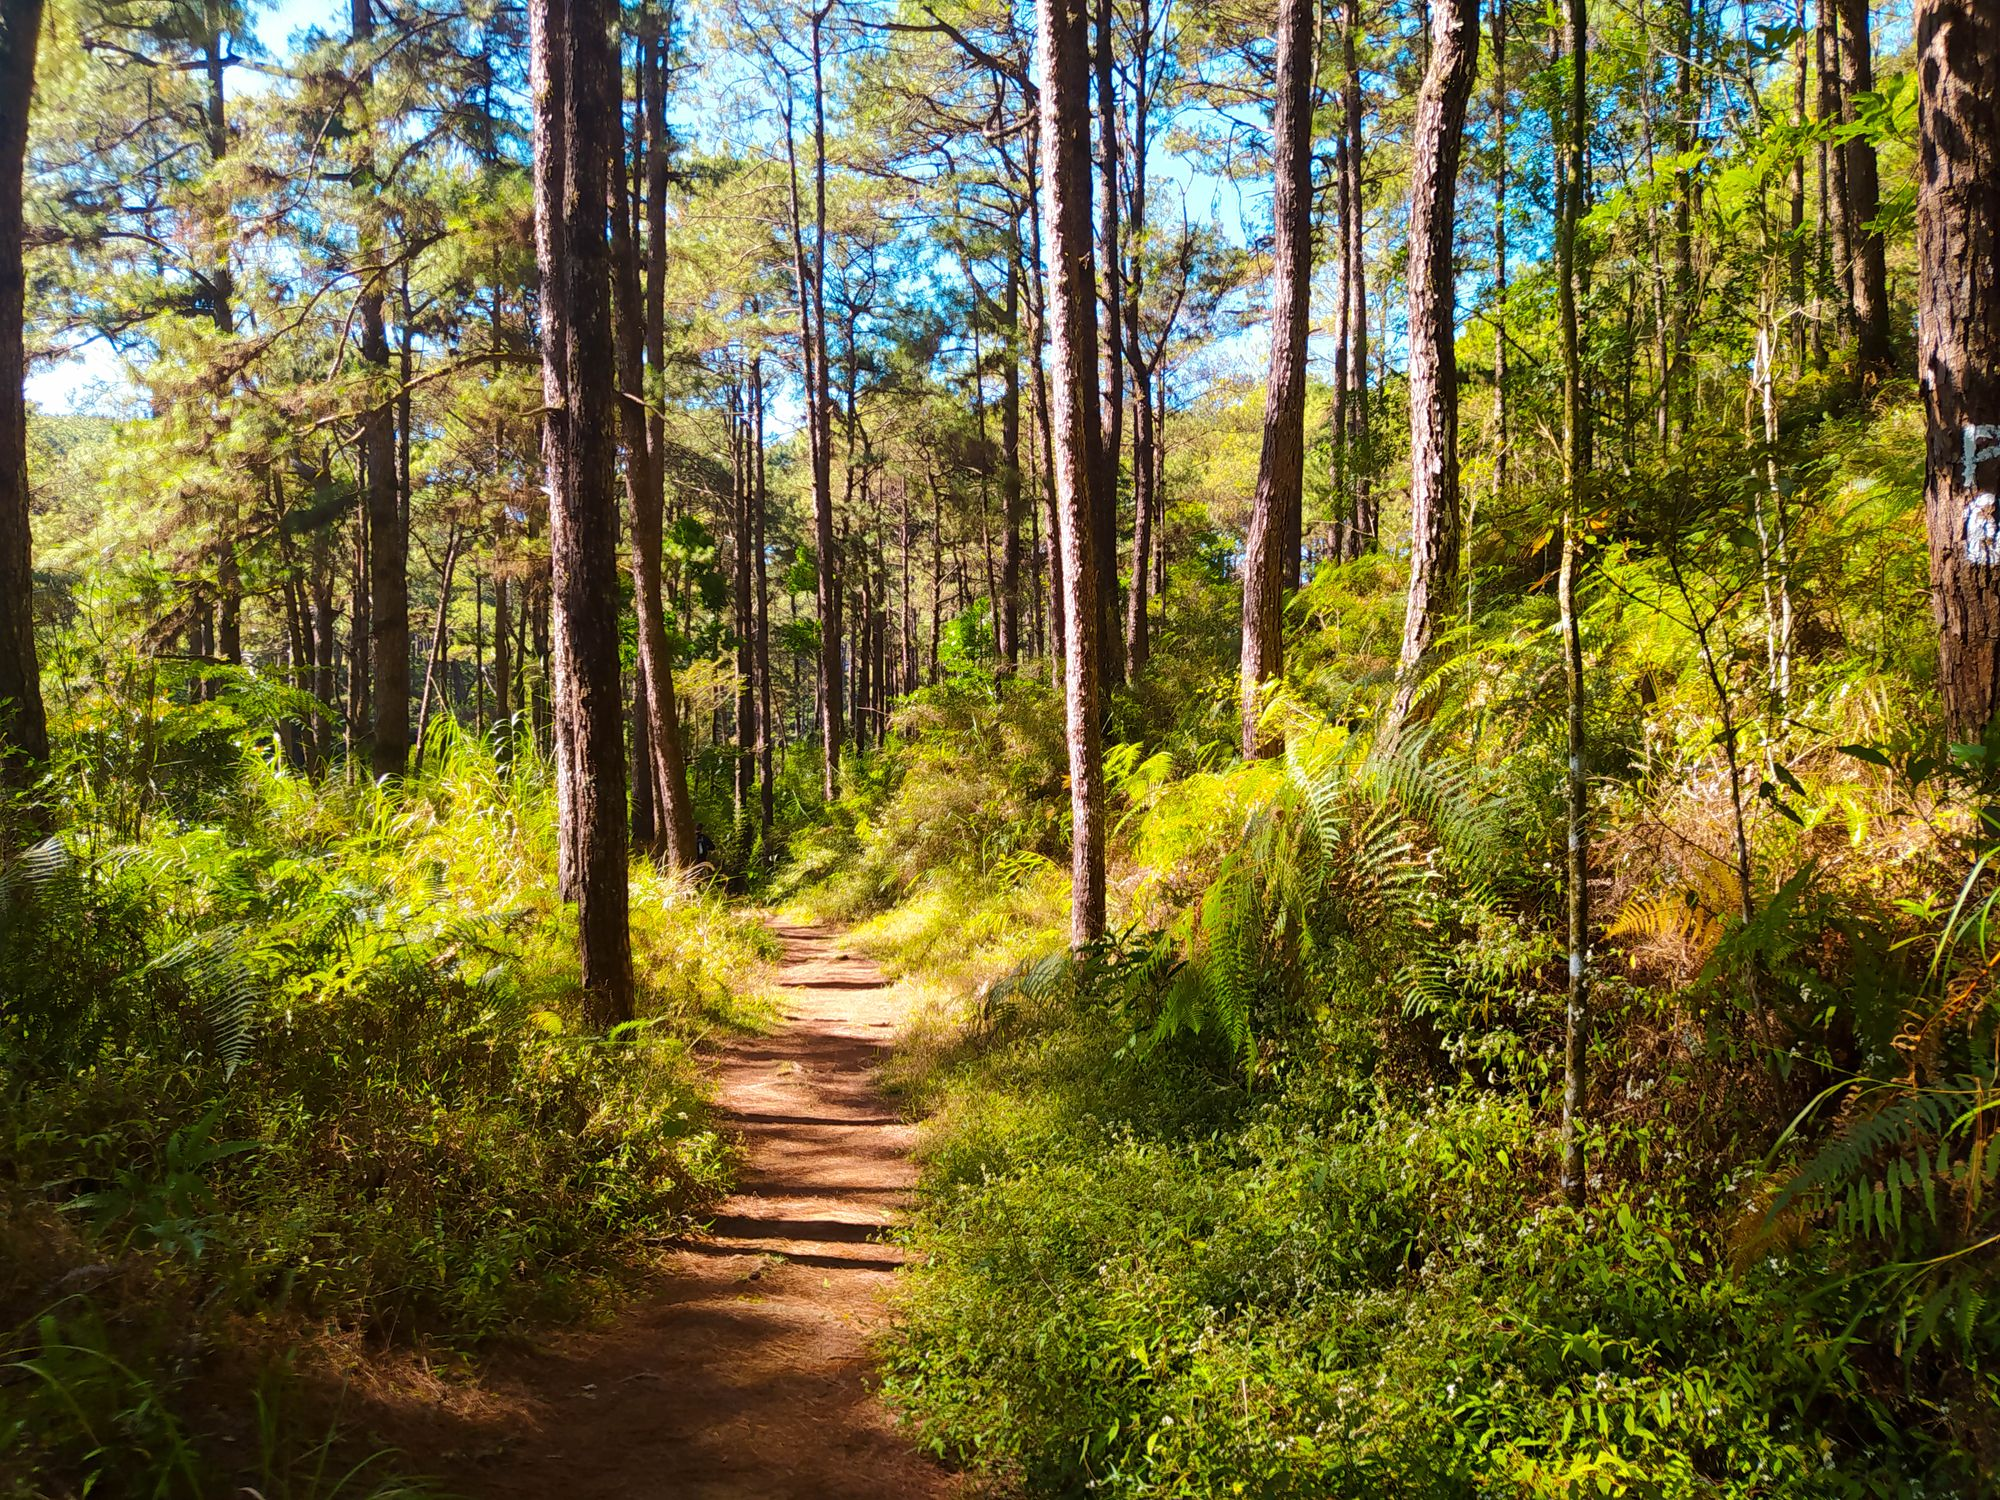 Dirt footpath running through vegetation and pine trees beneath a blue sky somewhere along the Eco-Trail